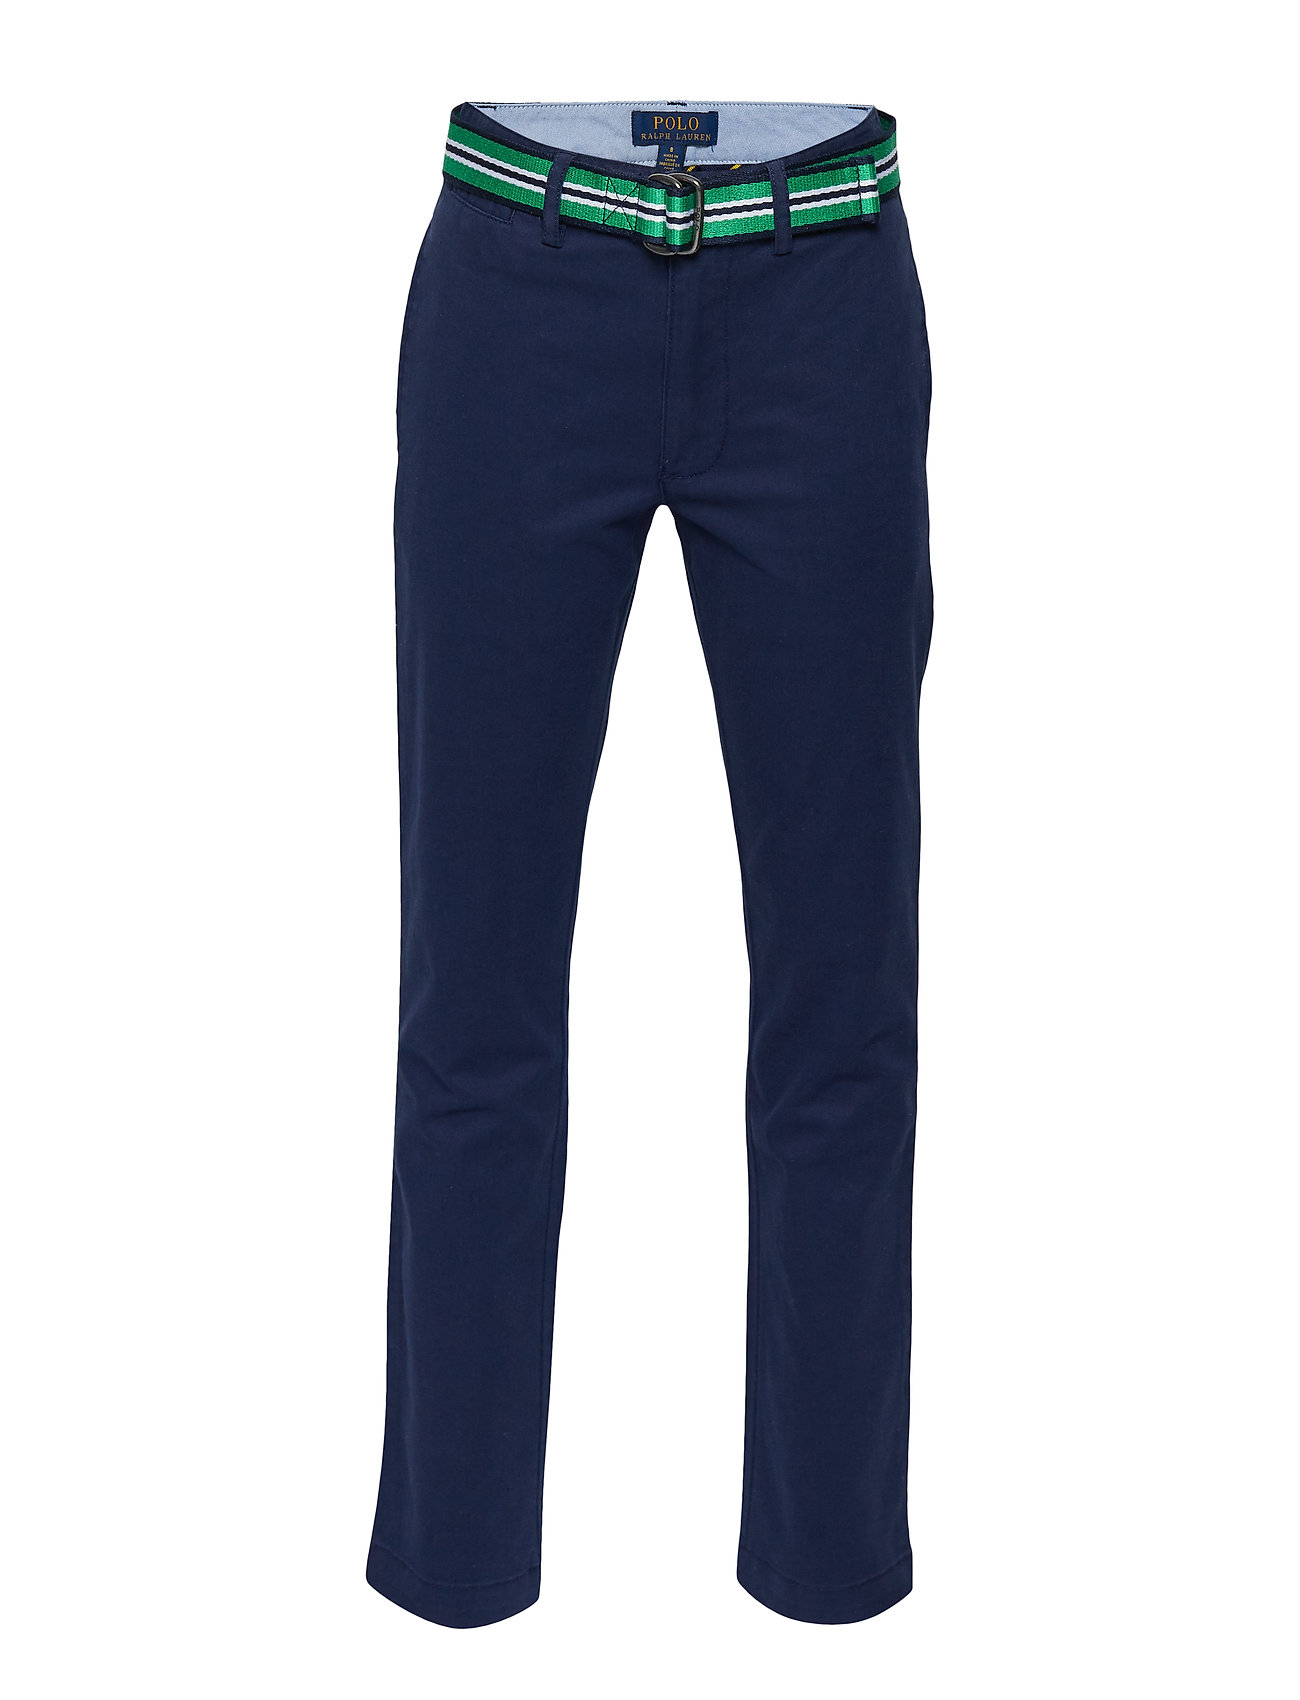 Ralph Lauren Kids STRTCH TISSUE CHINO-BELTED PANT-BT-